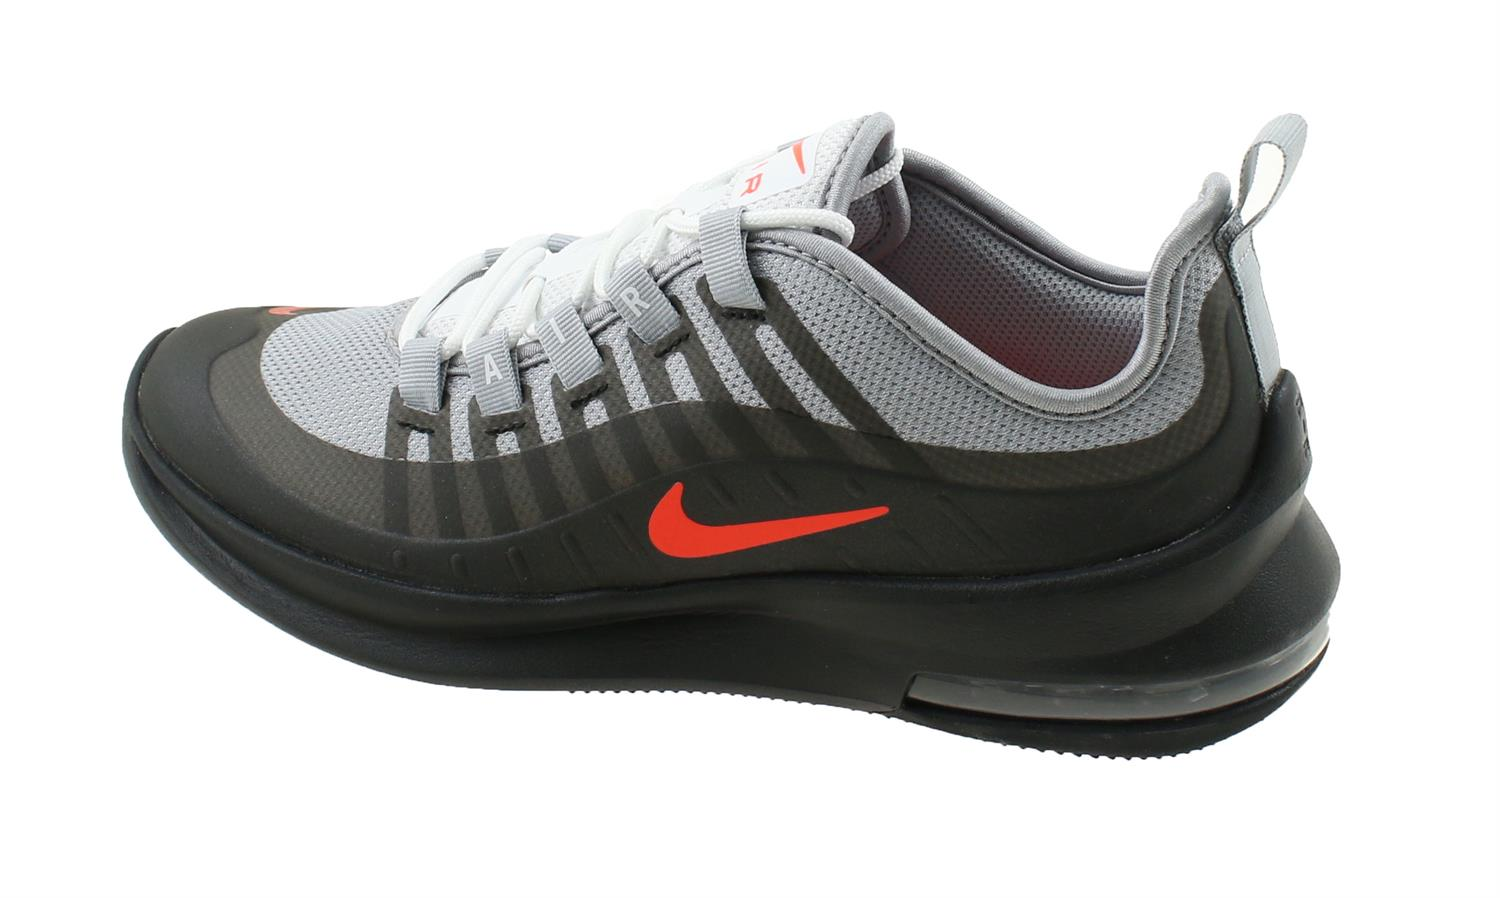 new product d3ed9 96af5 Nike Air Max Axis (GS) Junior. AH5222 003 WOLF GREY TOTAL CRIMSON-BL.  Product afbeelding Product afbeelding Product afbeelding Product afbeelding